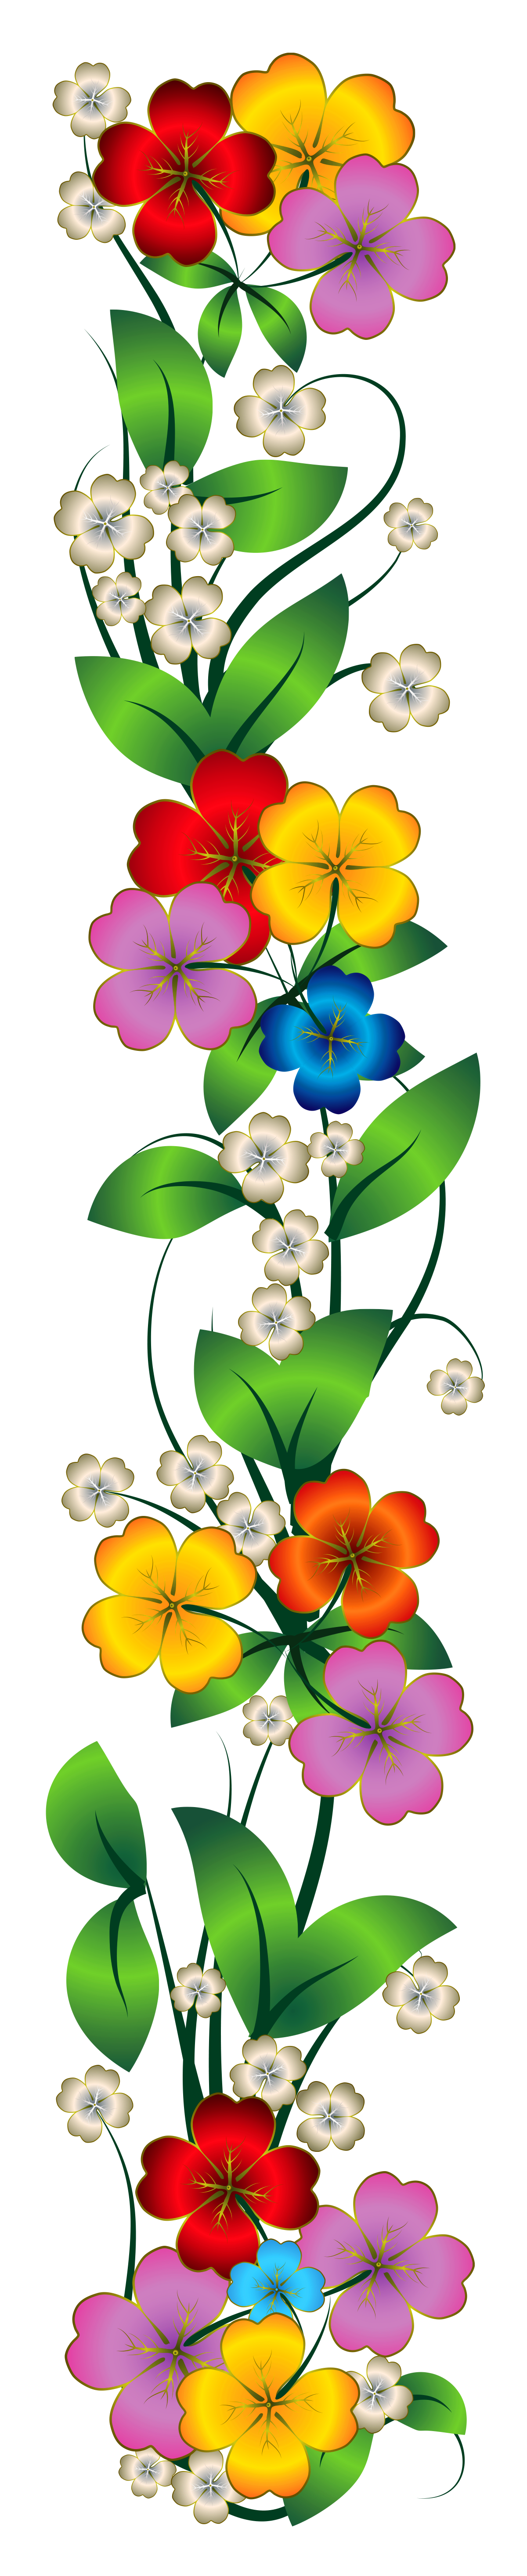 Flowers decor png clipart illustrations flowers for Decoration png